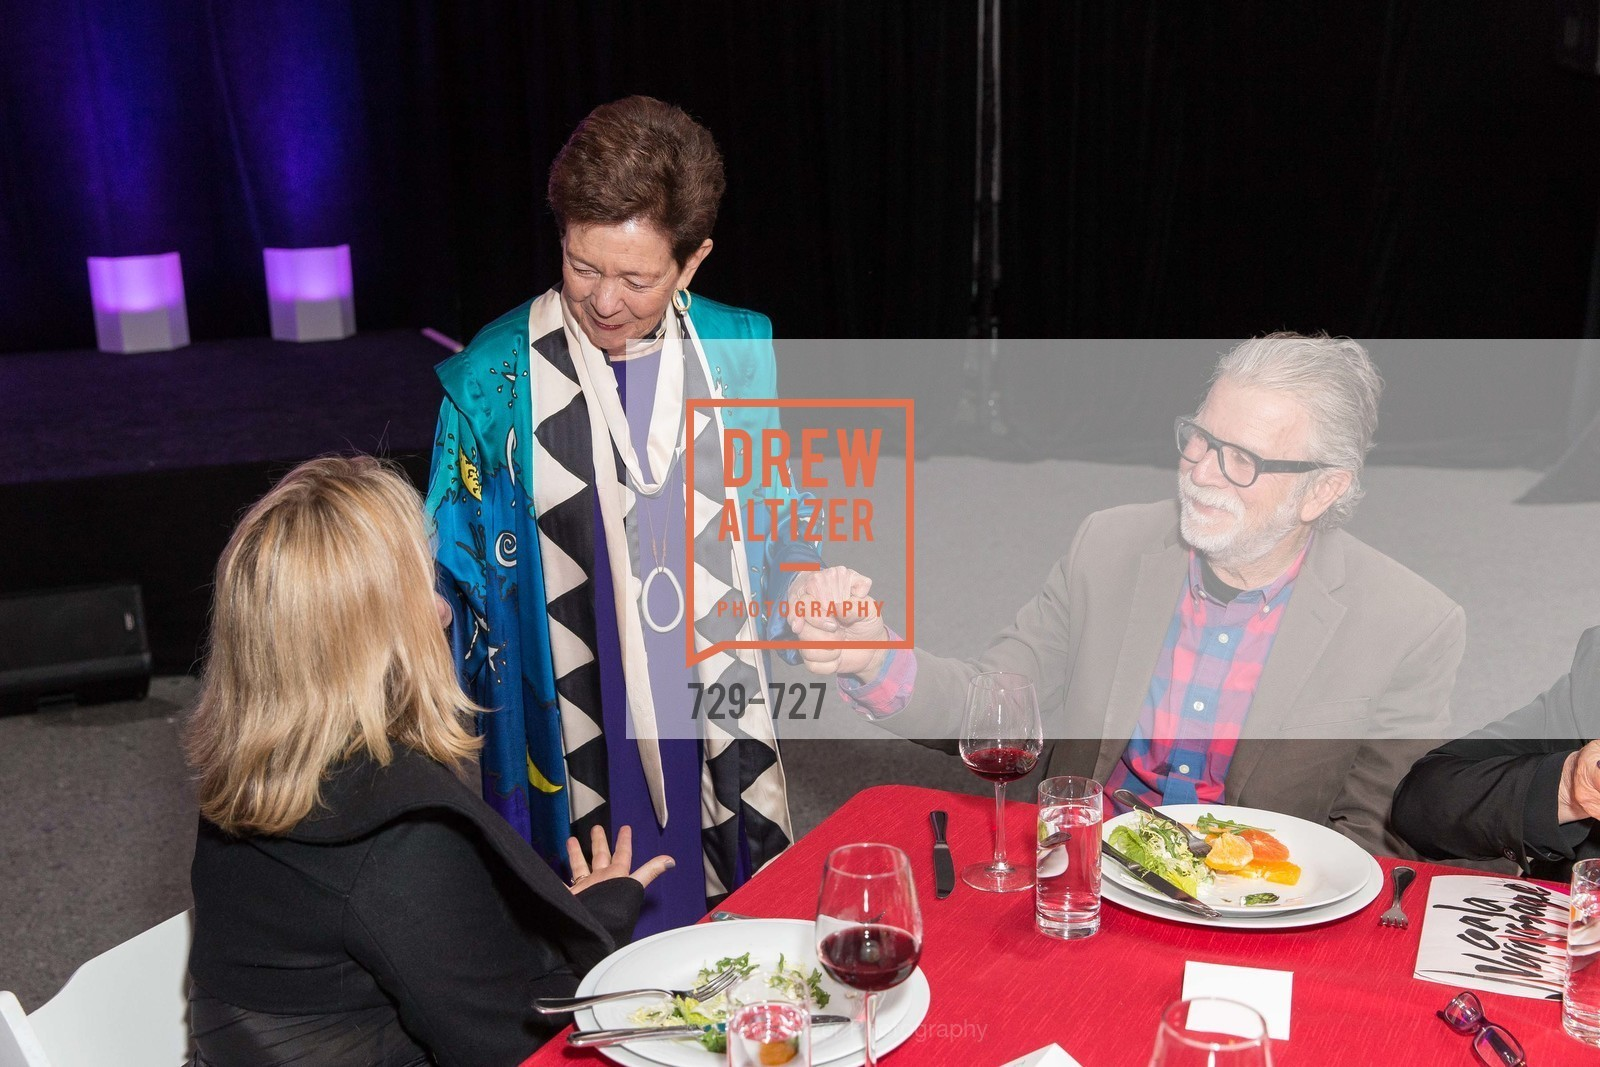 Cissie Swig, Robert Hudson, SAN FRANCISCO ART INSTITUTE Gala Honoring Art Visionary and Advocate ROSELYNE CHROMAN SWIG, US, May 14th, 2015,Drew Altizer, Drew Altizer Photography, full-service agency, private events, San Francisco photographer, photographer california